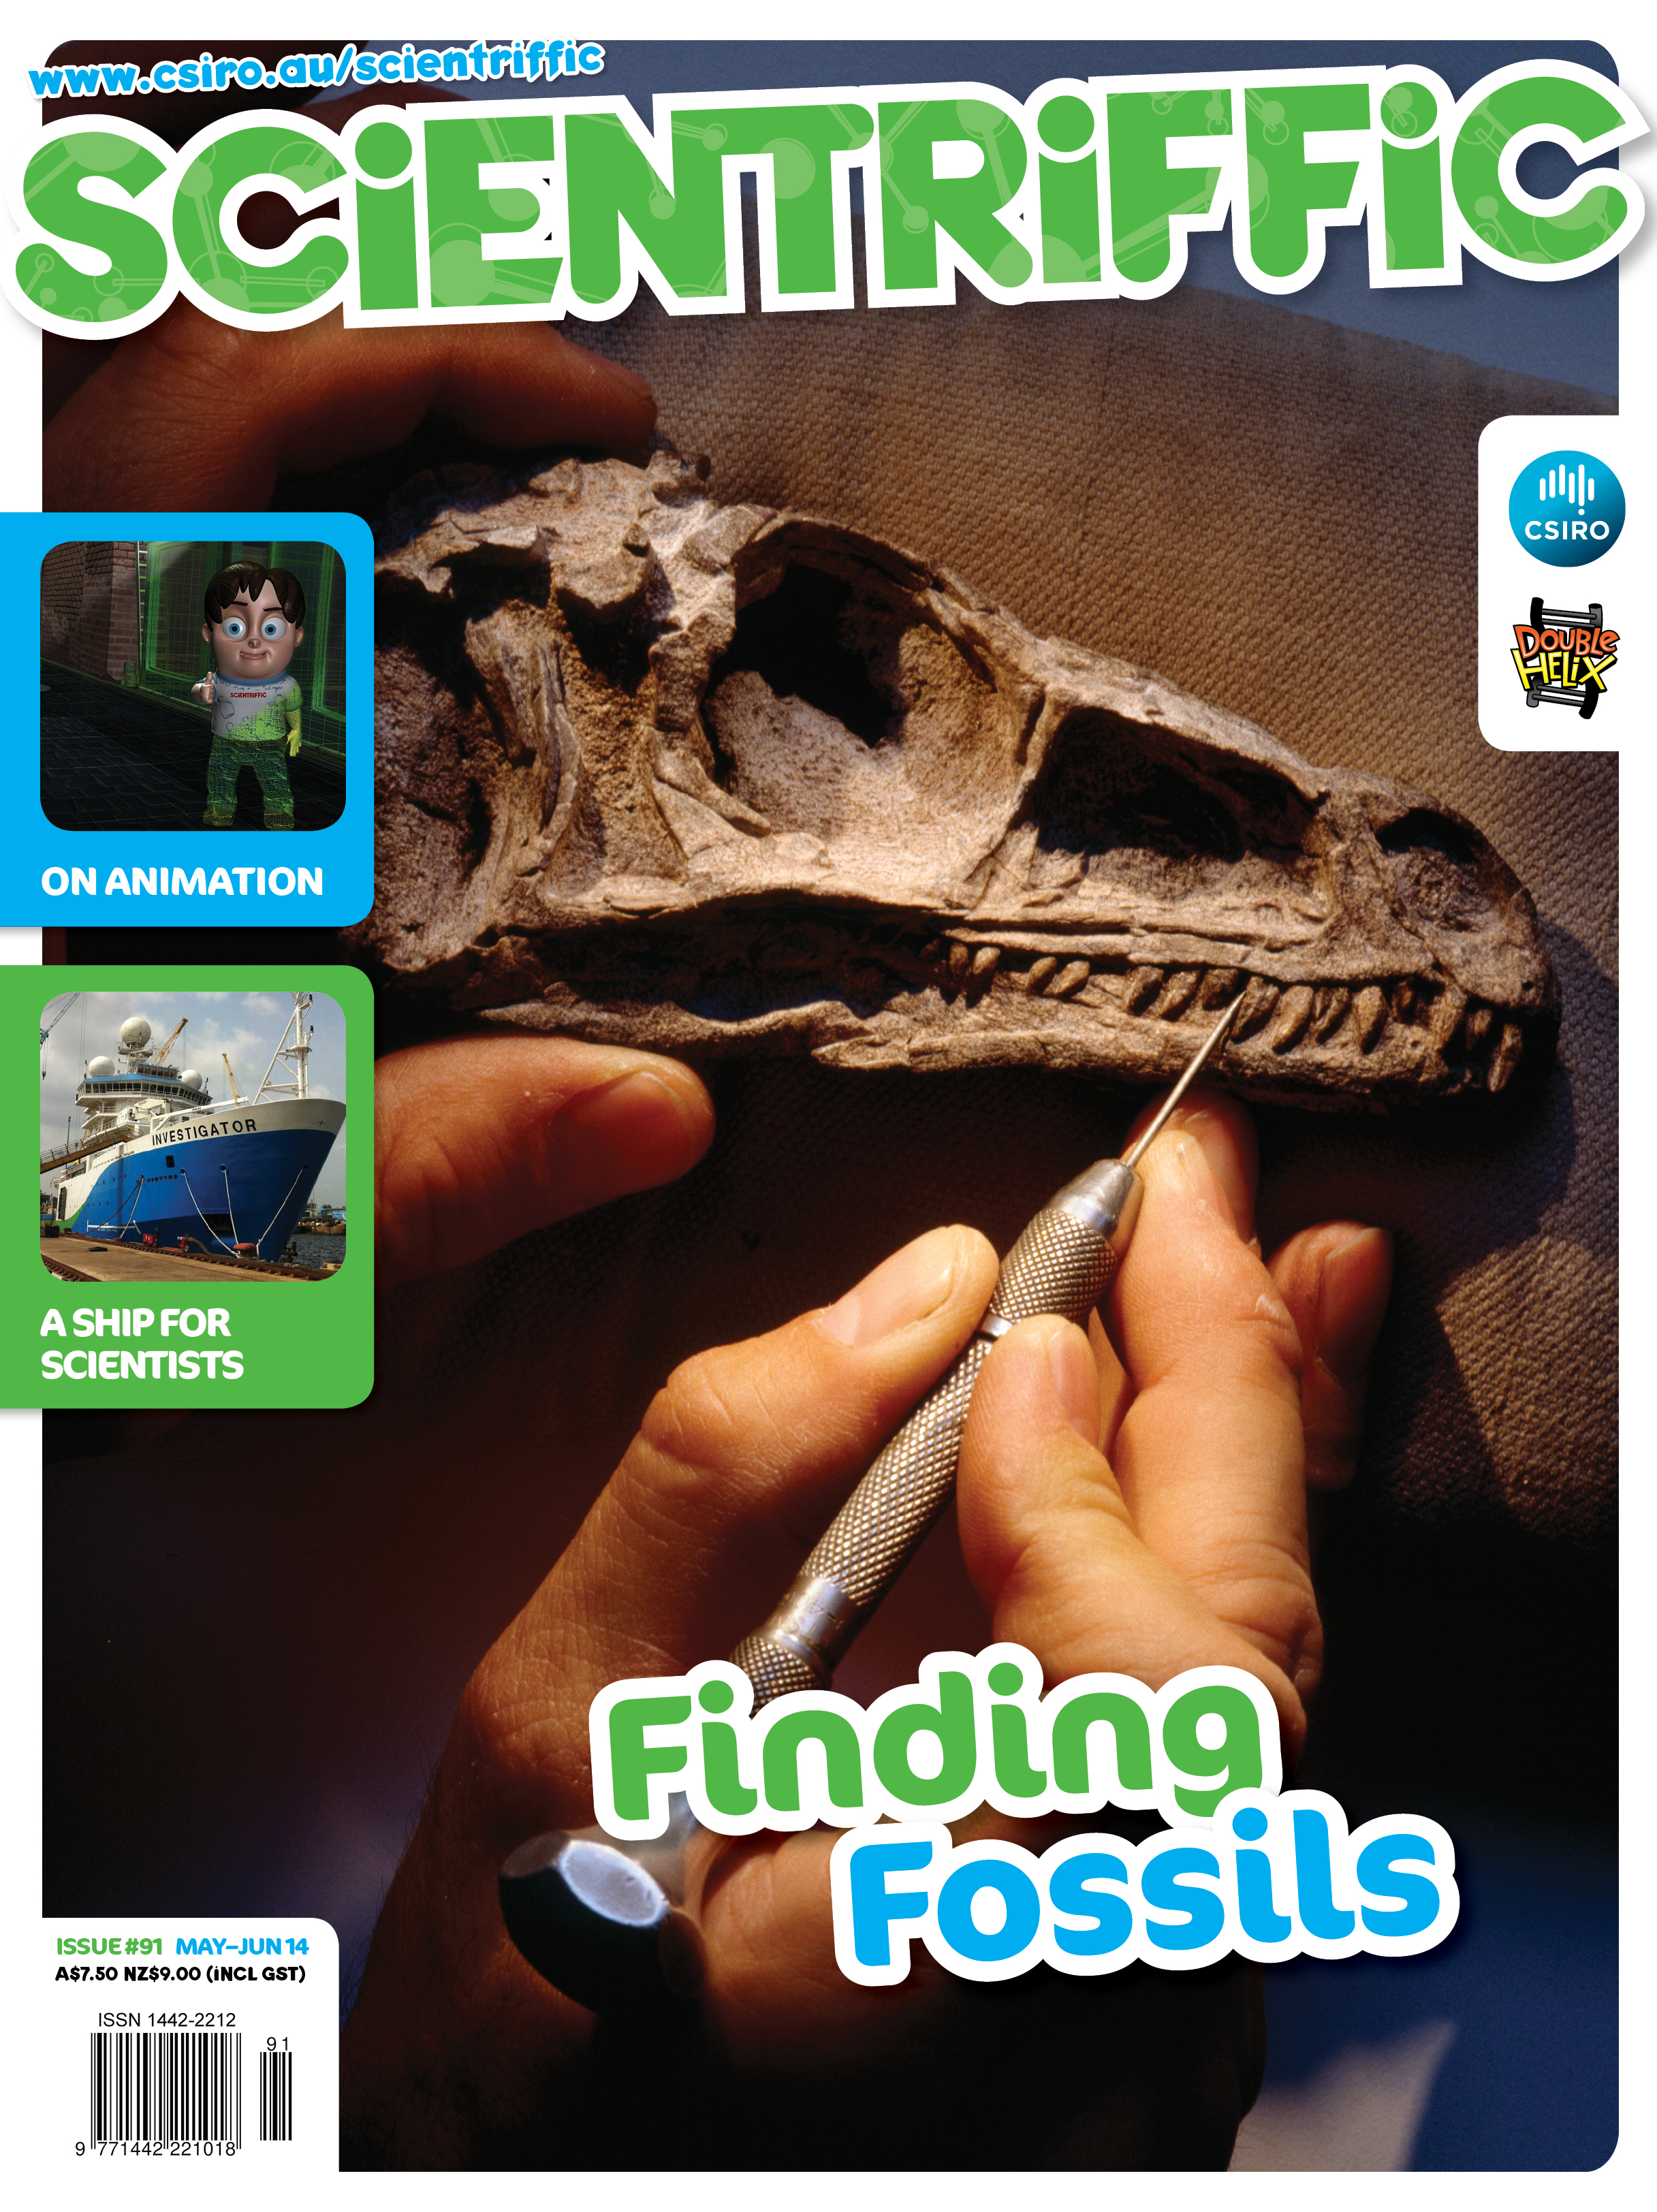 Scientriffic May-June 2014